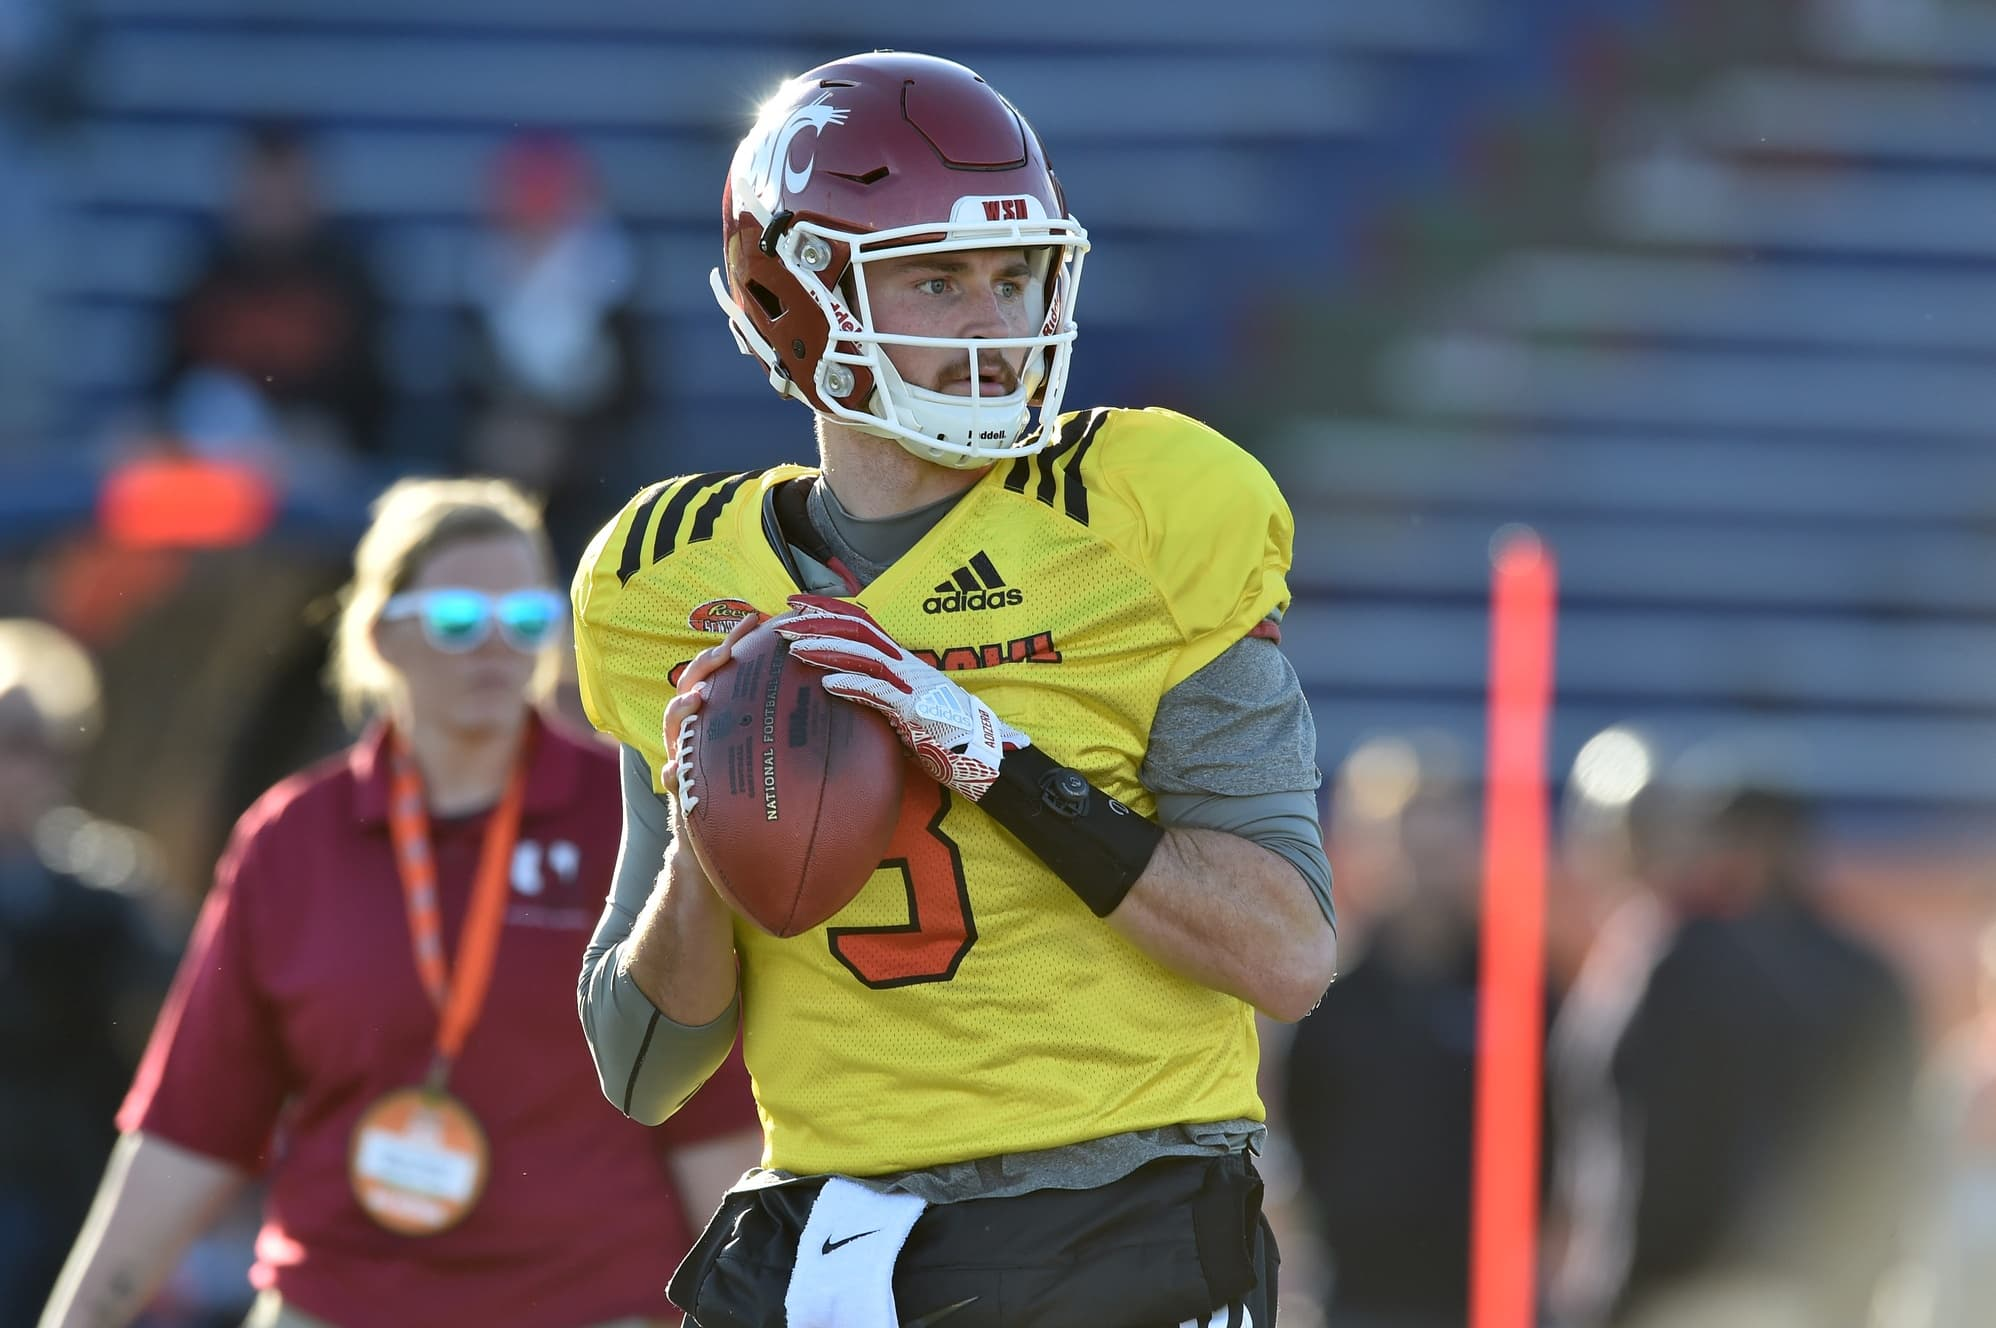 newest faf01 1fba5 Luke Falk pulls out of Senior Bowl to attend Tyler ...